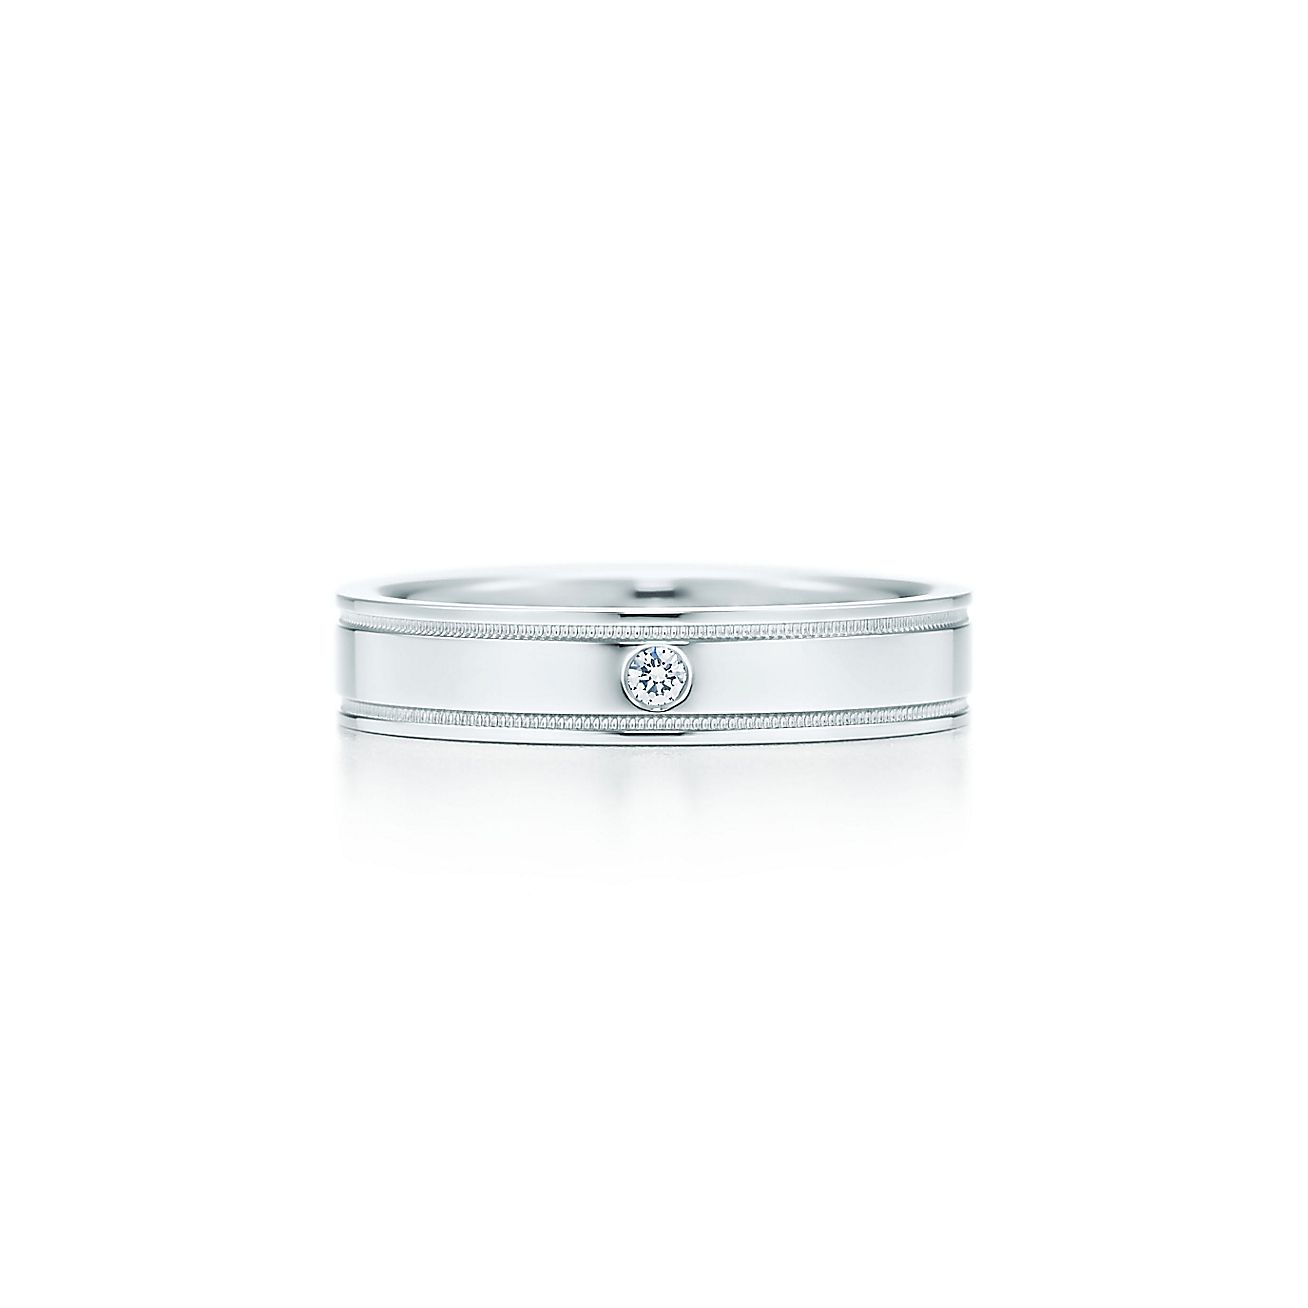 Tiffany Flat Double Milgrain Wedding Band Ring In Platinum With A Diamond Co